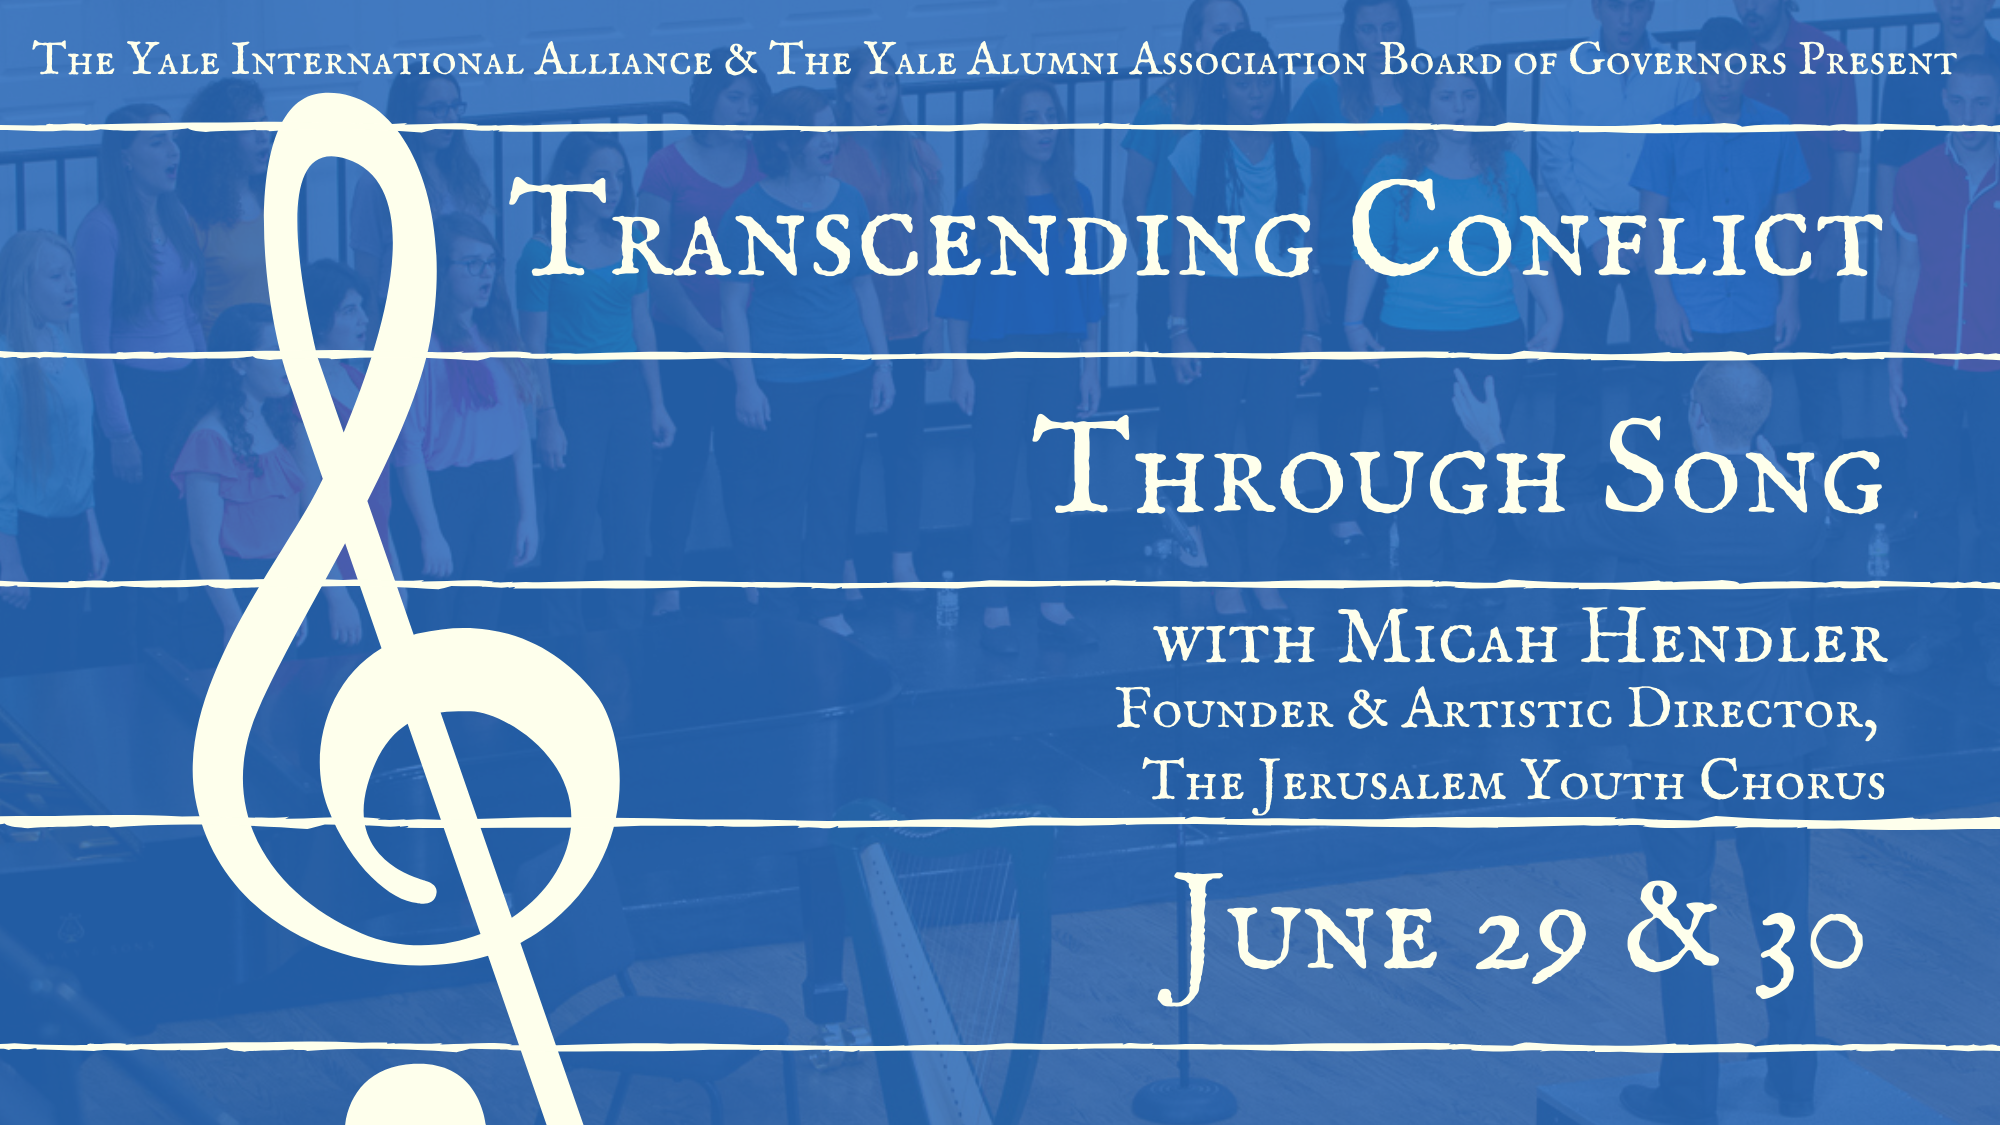 Transcending Conflict Through Song with Micah Hendler '11, Founder The Jerusalem Youth Chorus